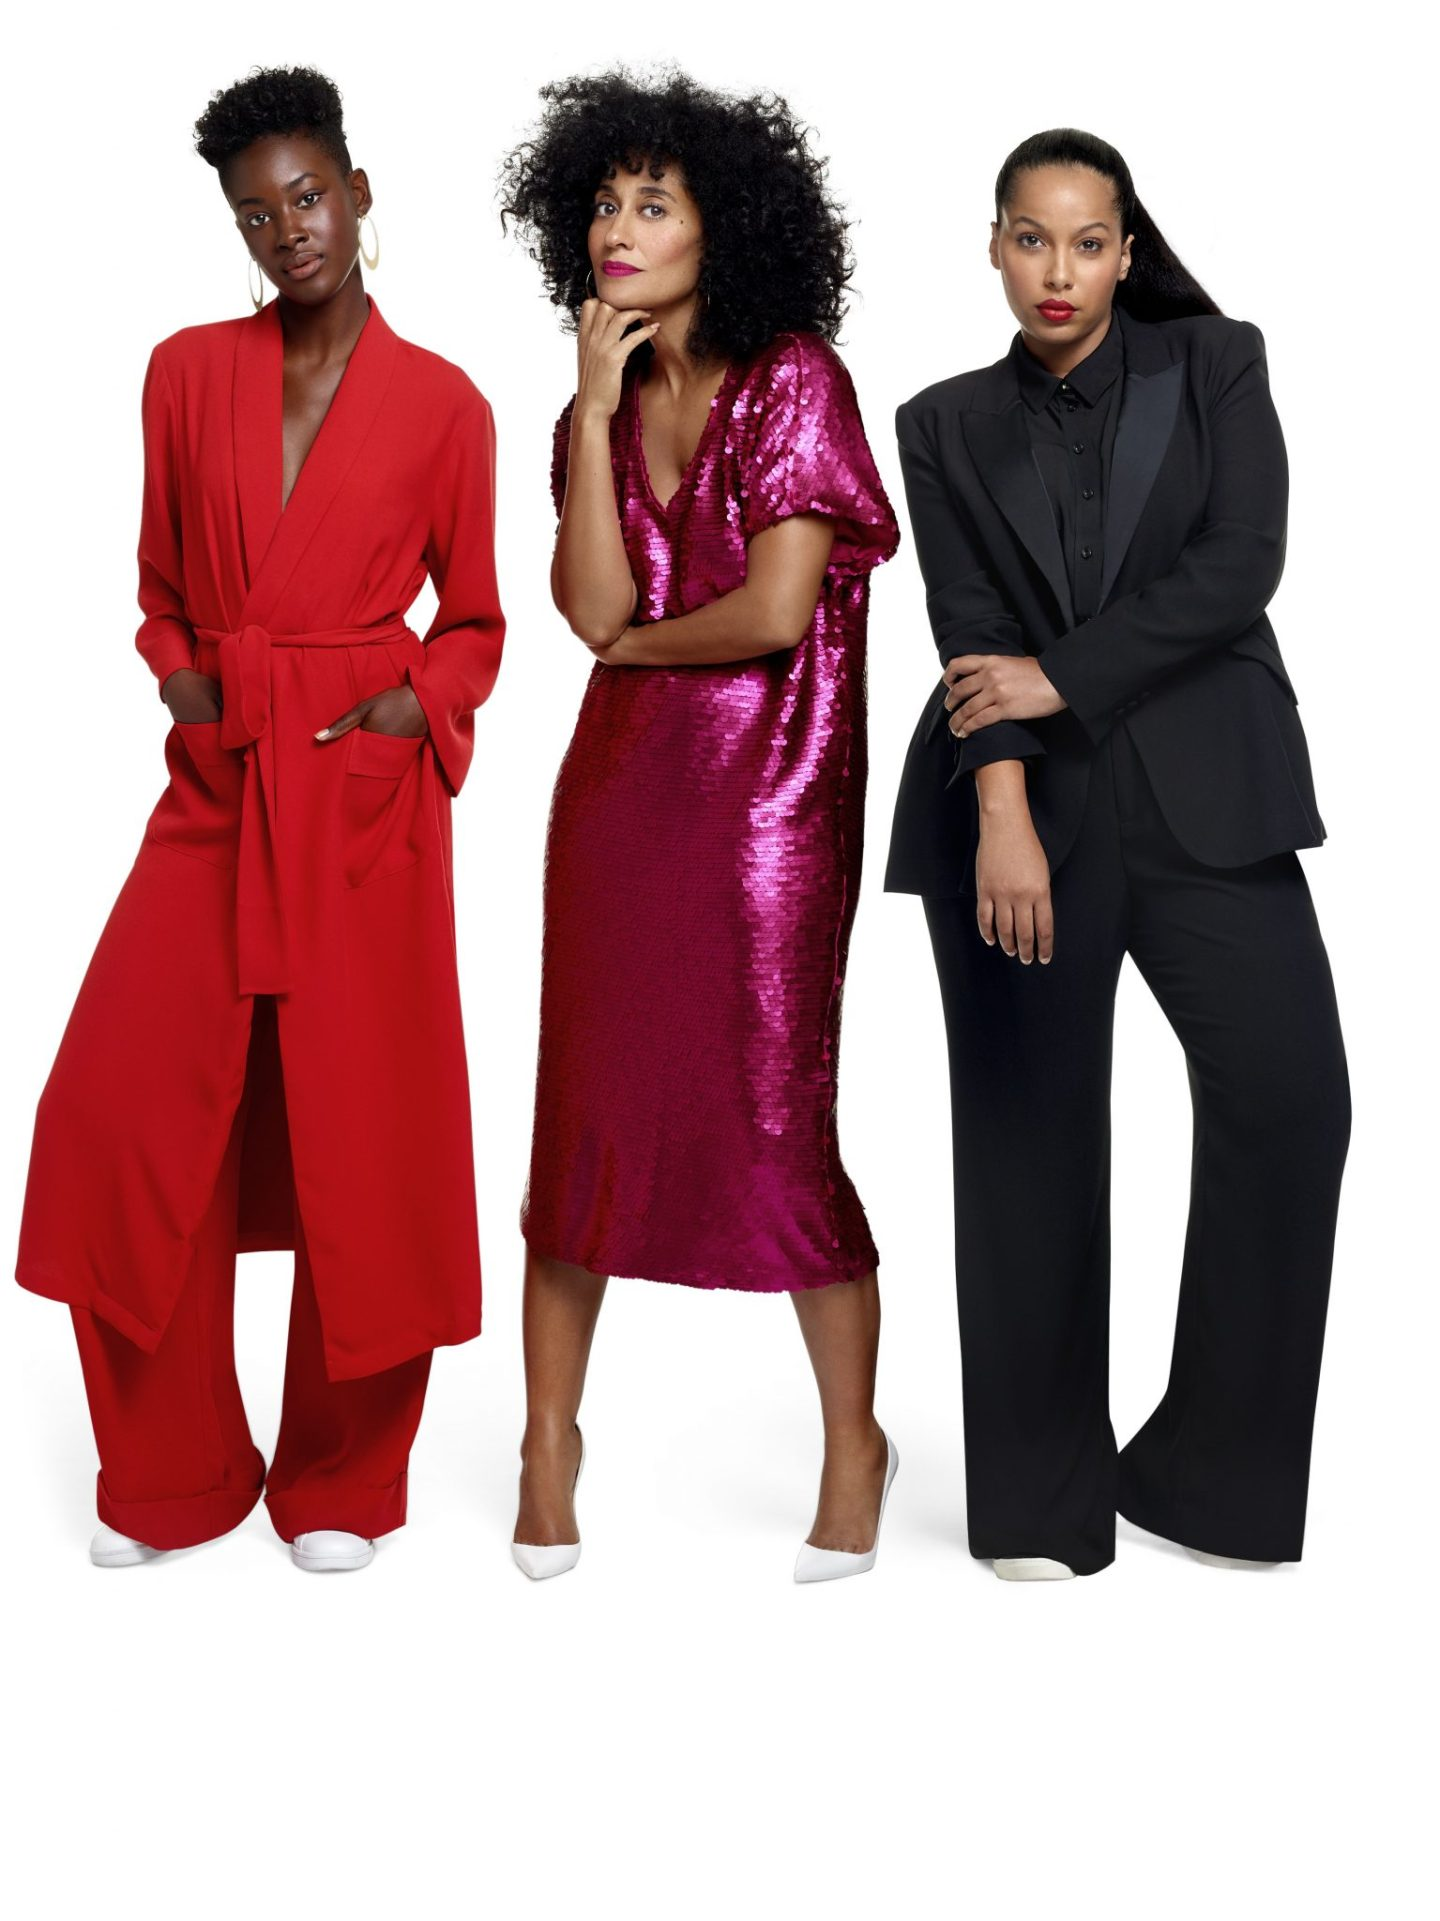 Tracee Ellis Ross X JCPenney for Exclusive Holiday Collection!